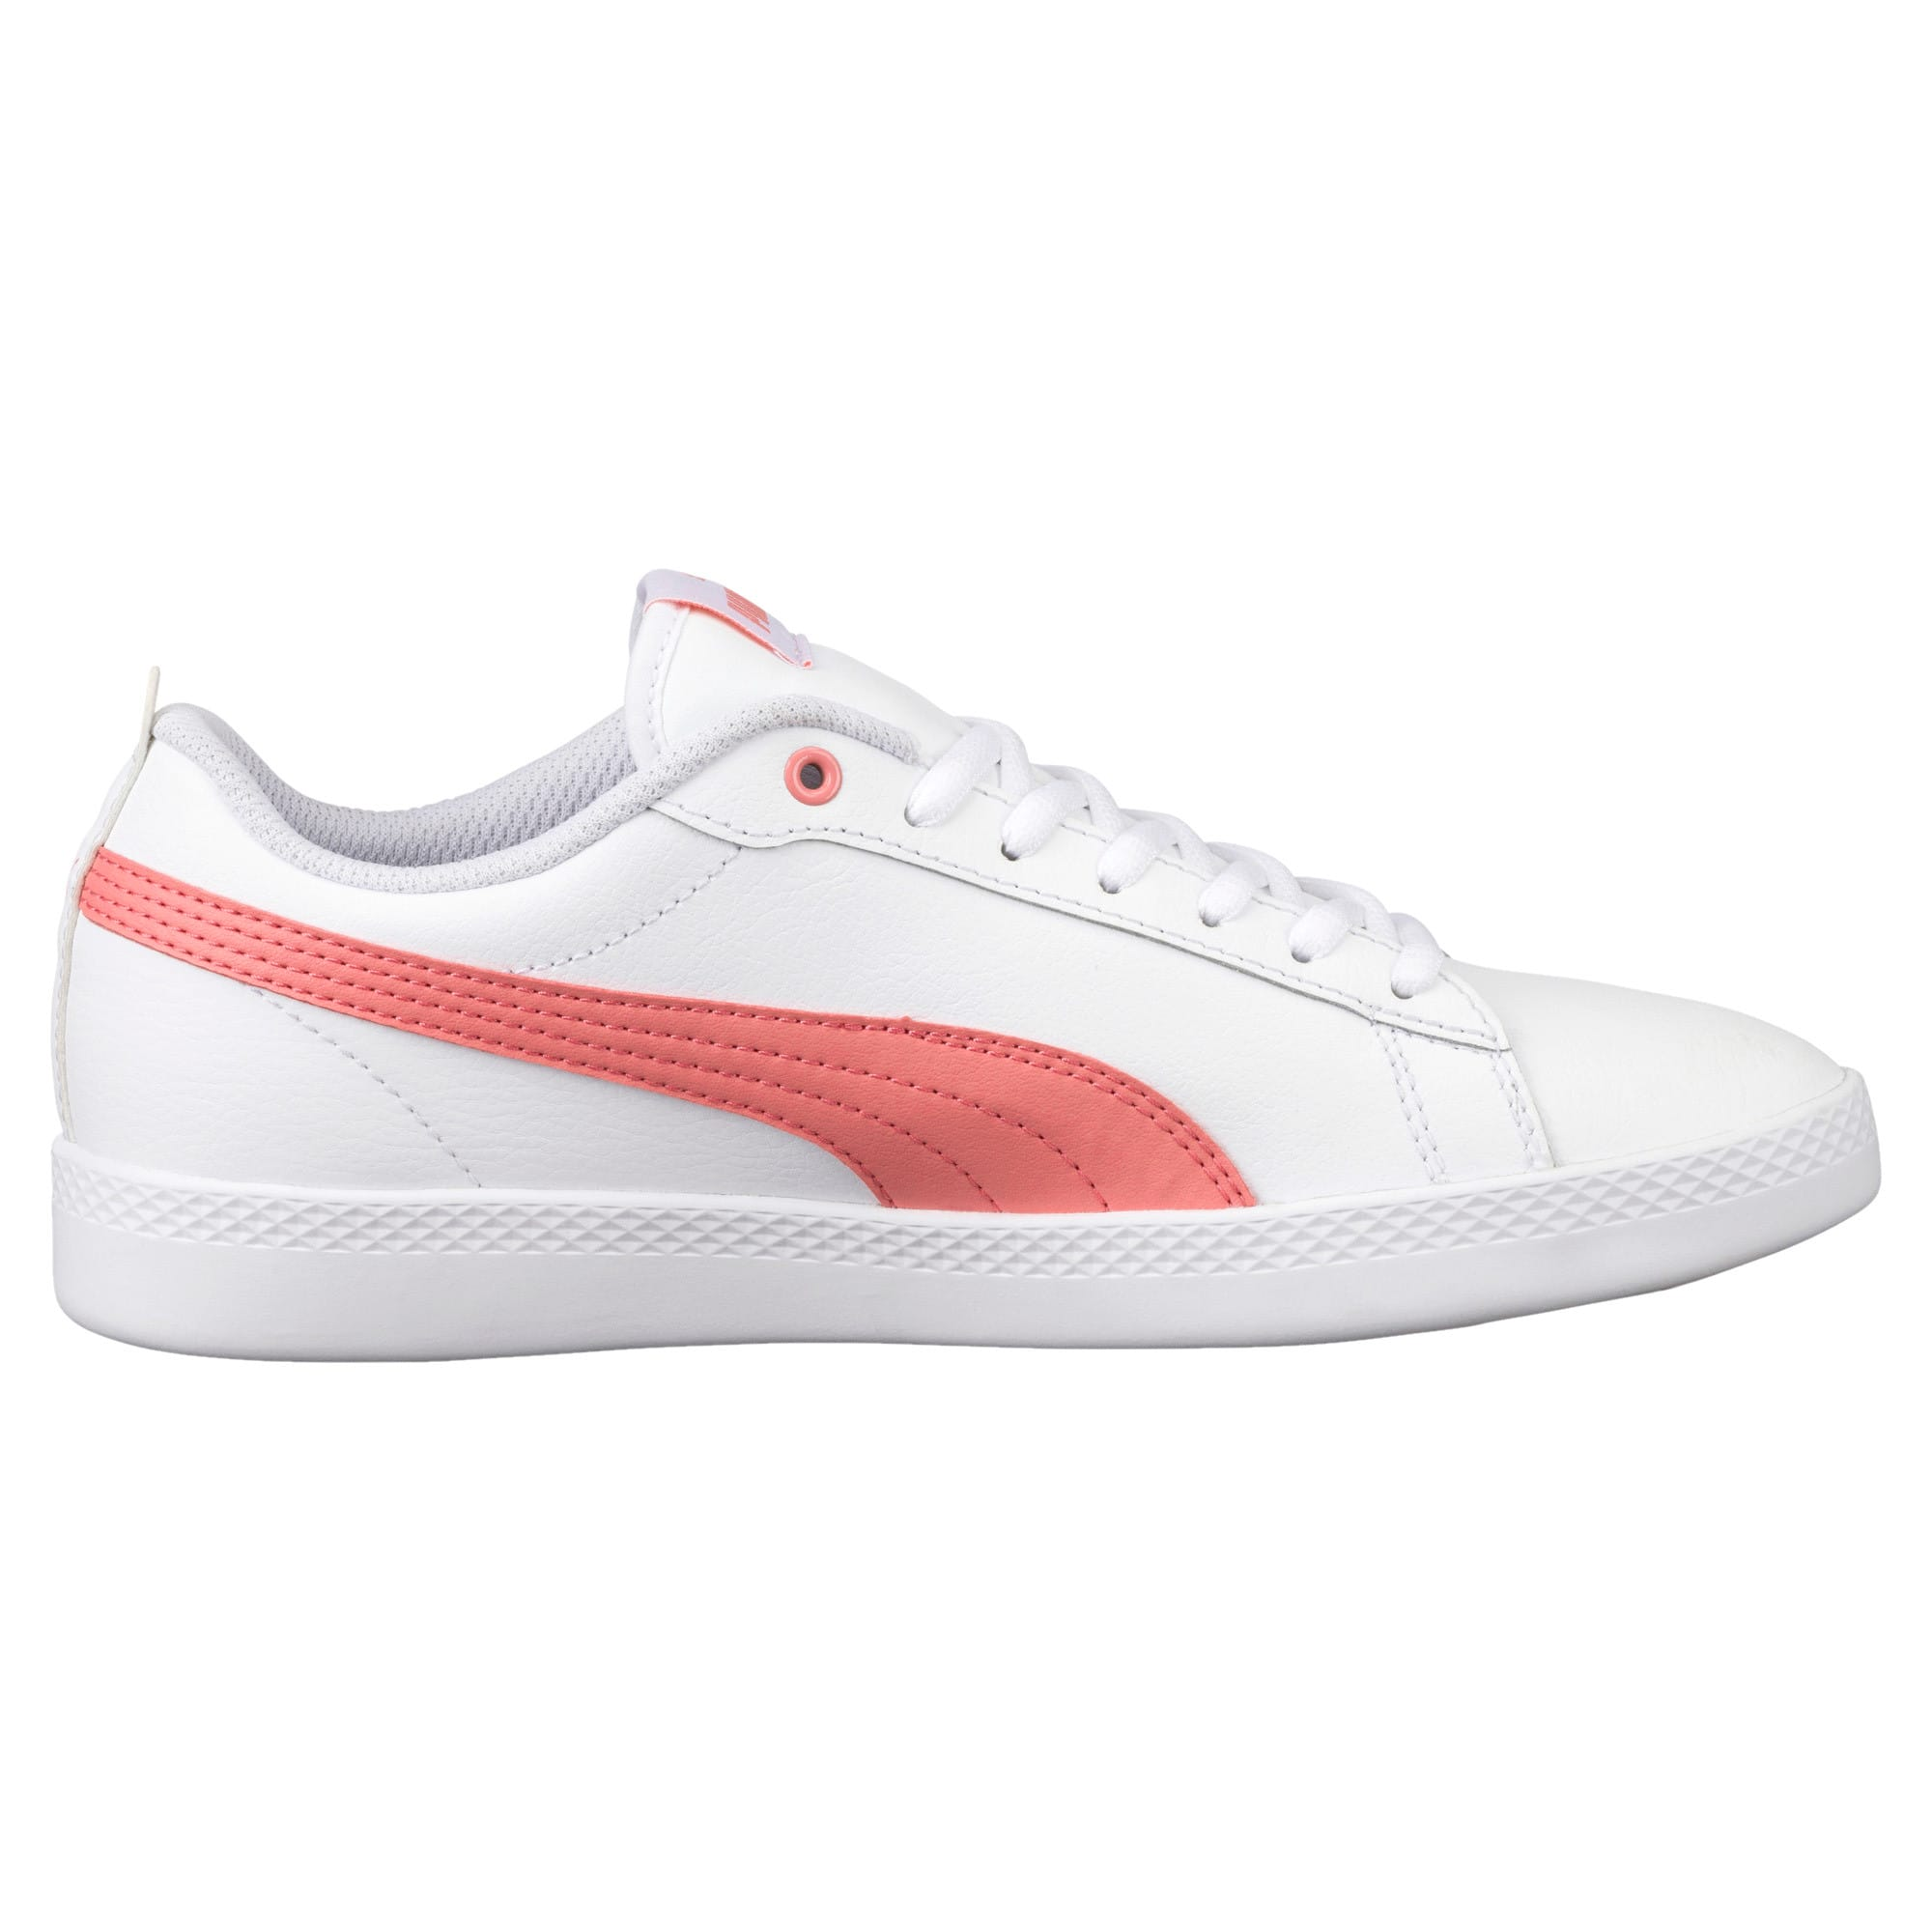 Thumbnail 4 of Smash v2 Leather Women's Trainers, Puma White-Shell Pink, medium-IND